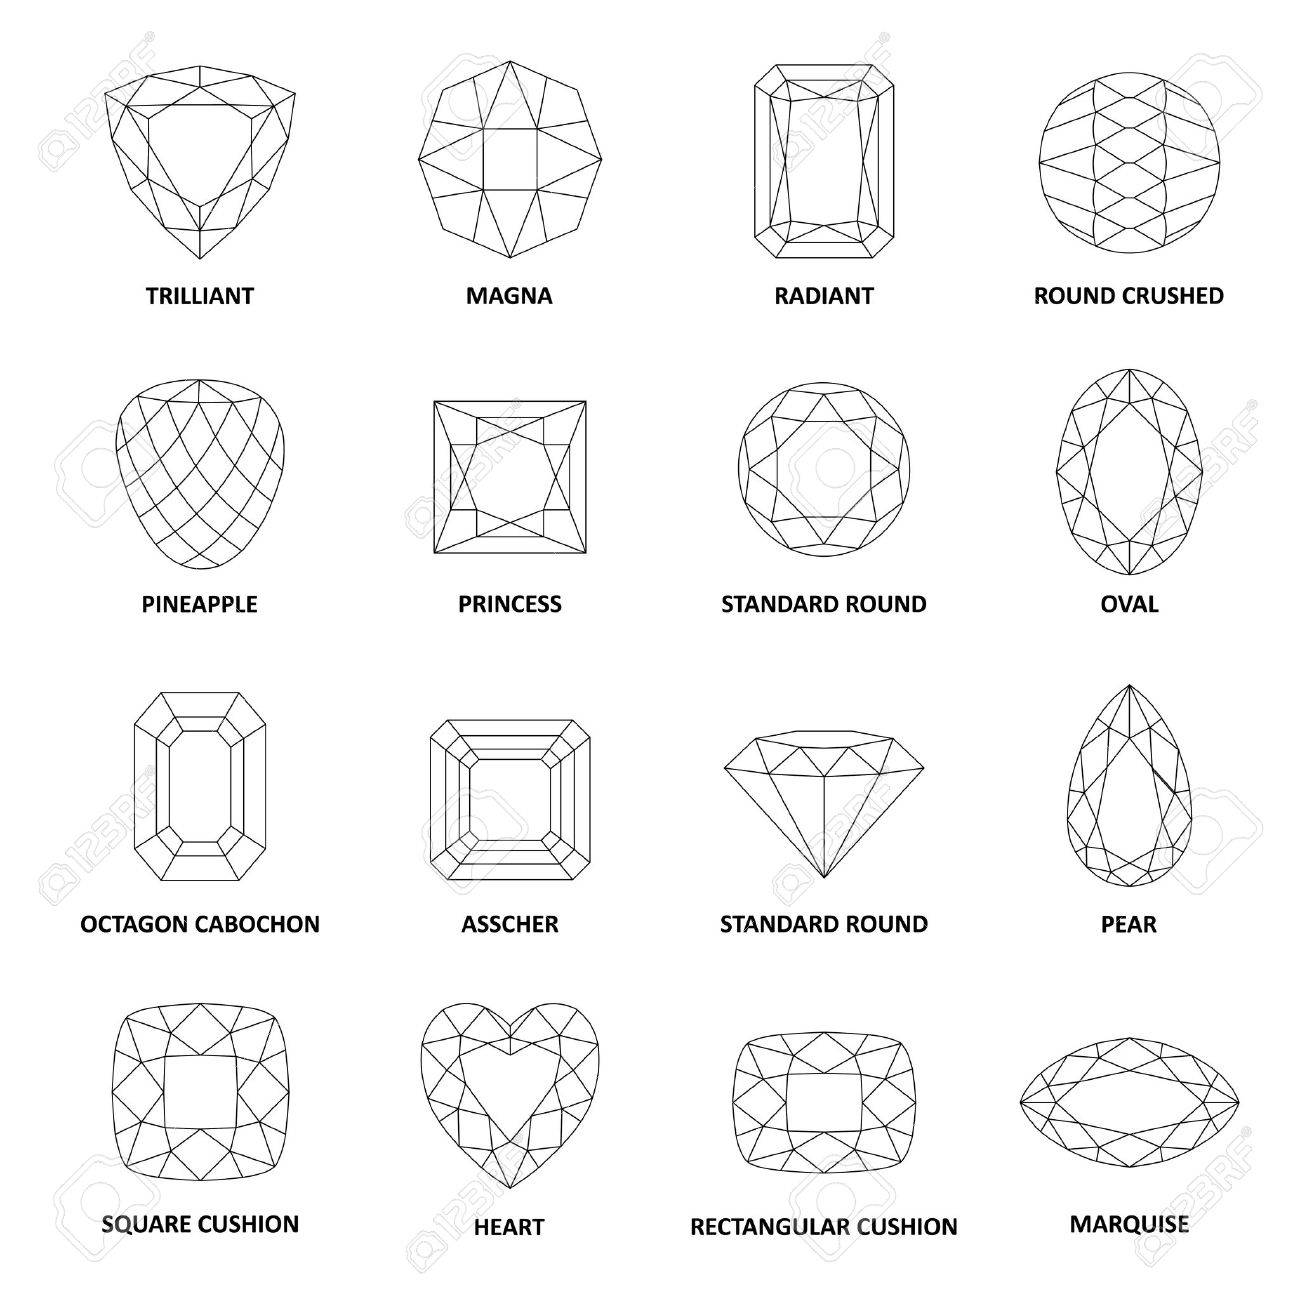 Low poly popular black outlined gems cuts isolated on white background, illustration - 53442688